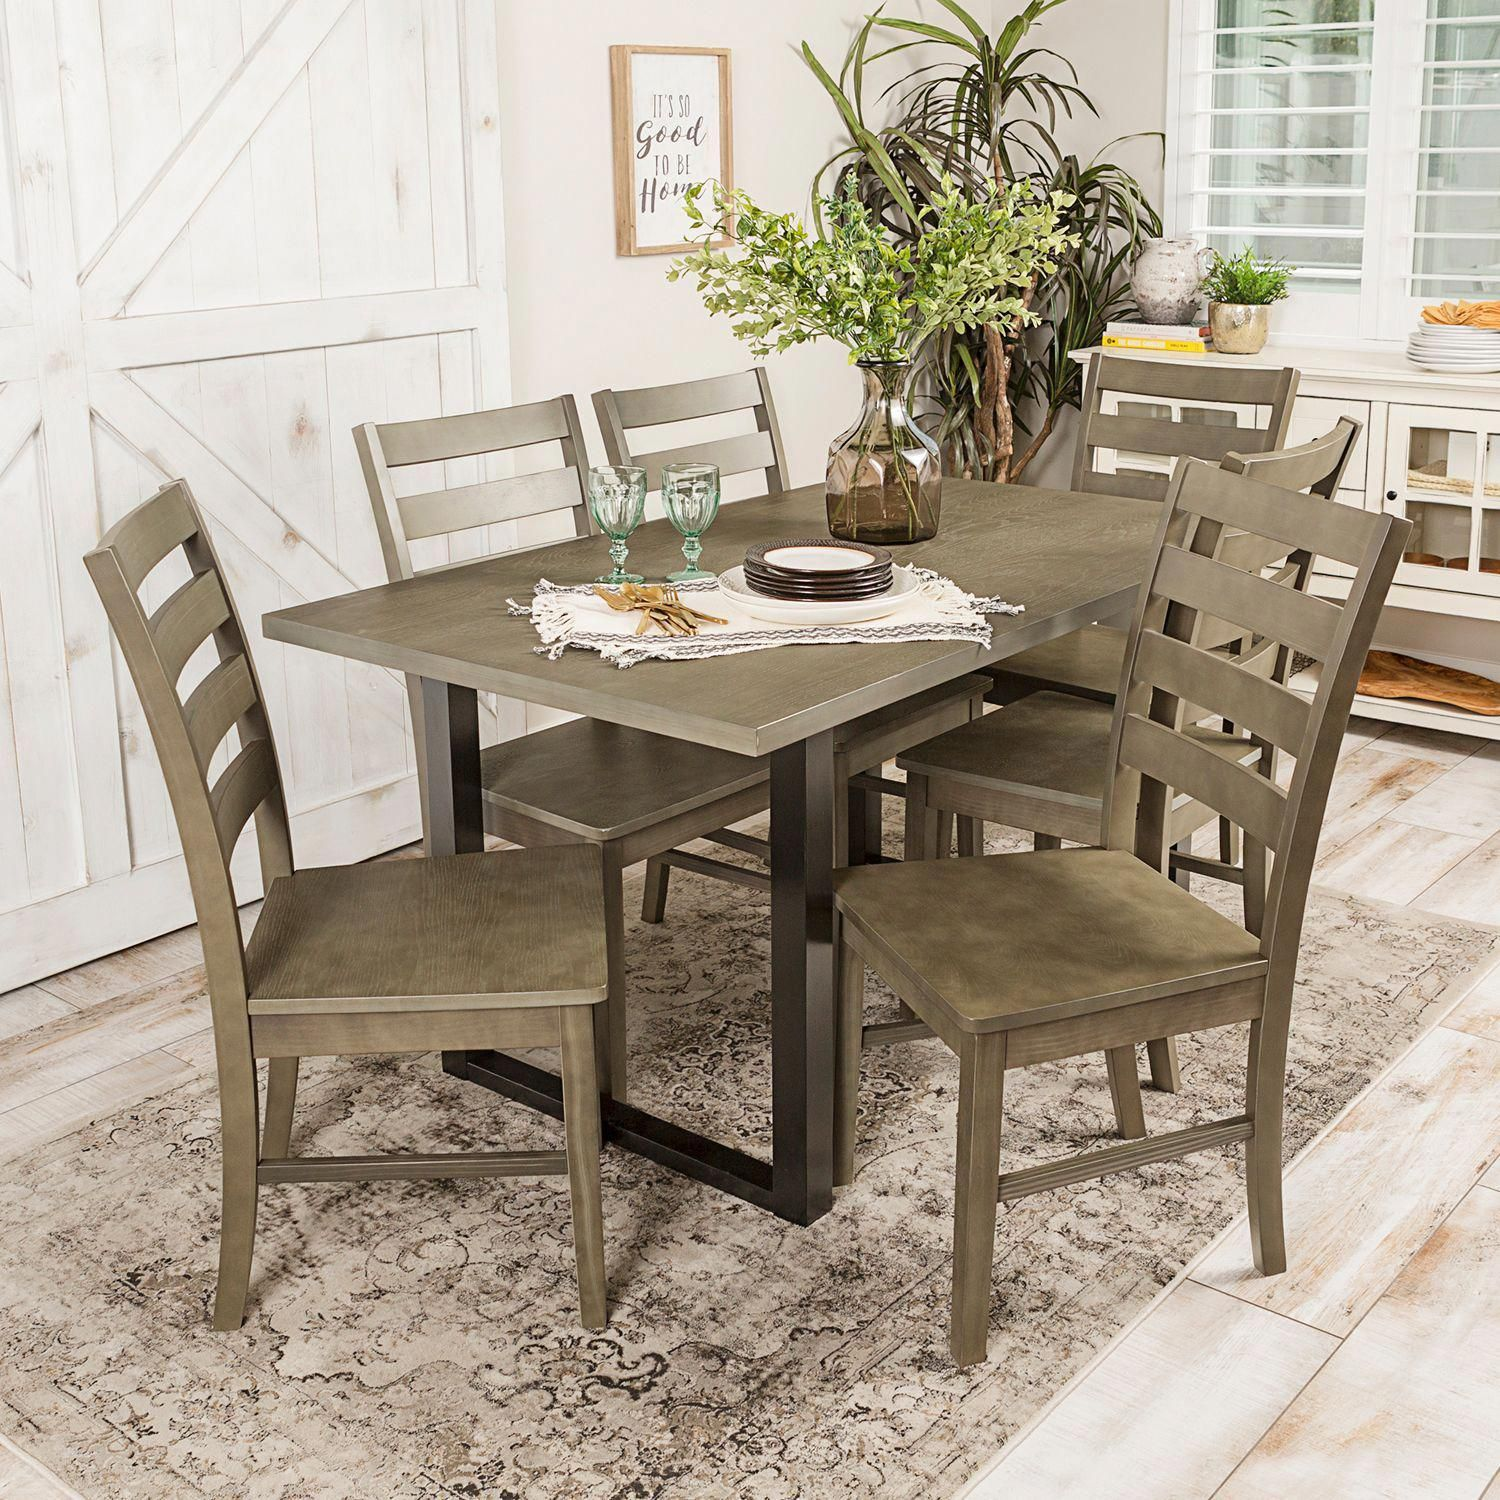 Best 892 Madison Aged Gray 7 Piece Dining Set Pier 1 Imports 400 x 300